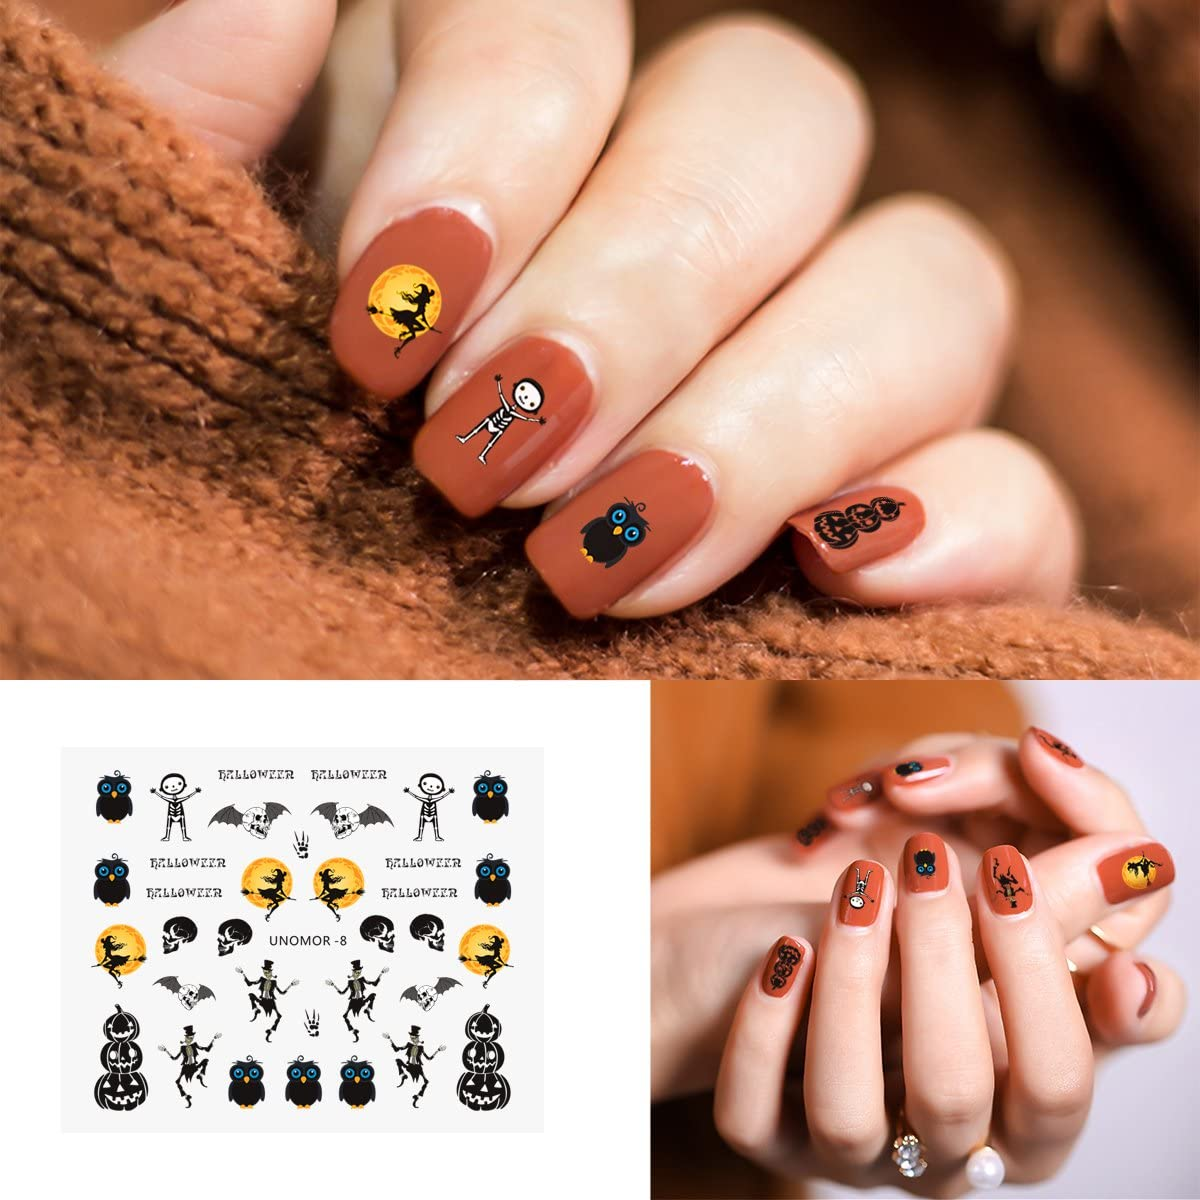 Halloween Nails Decals Stickers, 30 Sheets Multi-Color Mixed Styles Ghost Spiders Pumpkin Witches Nail Art Decals